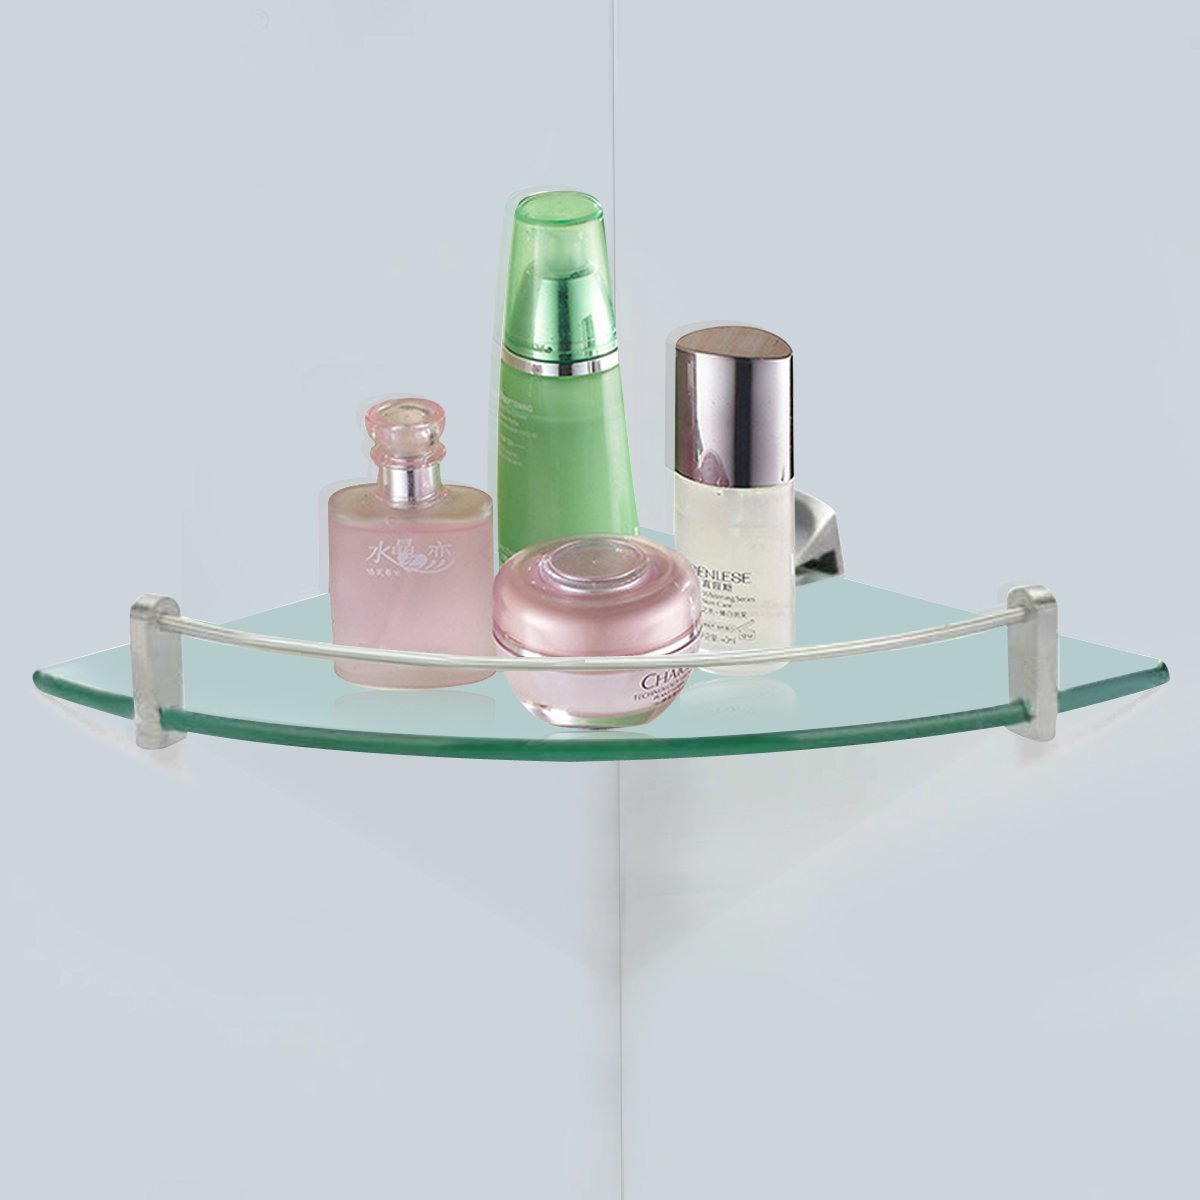 Merveilleux Bathroom Corner Shelf 4